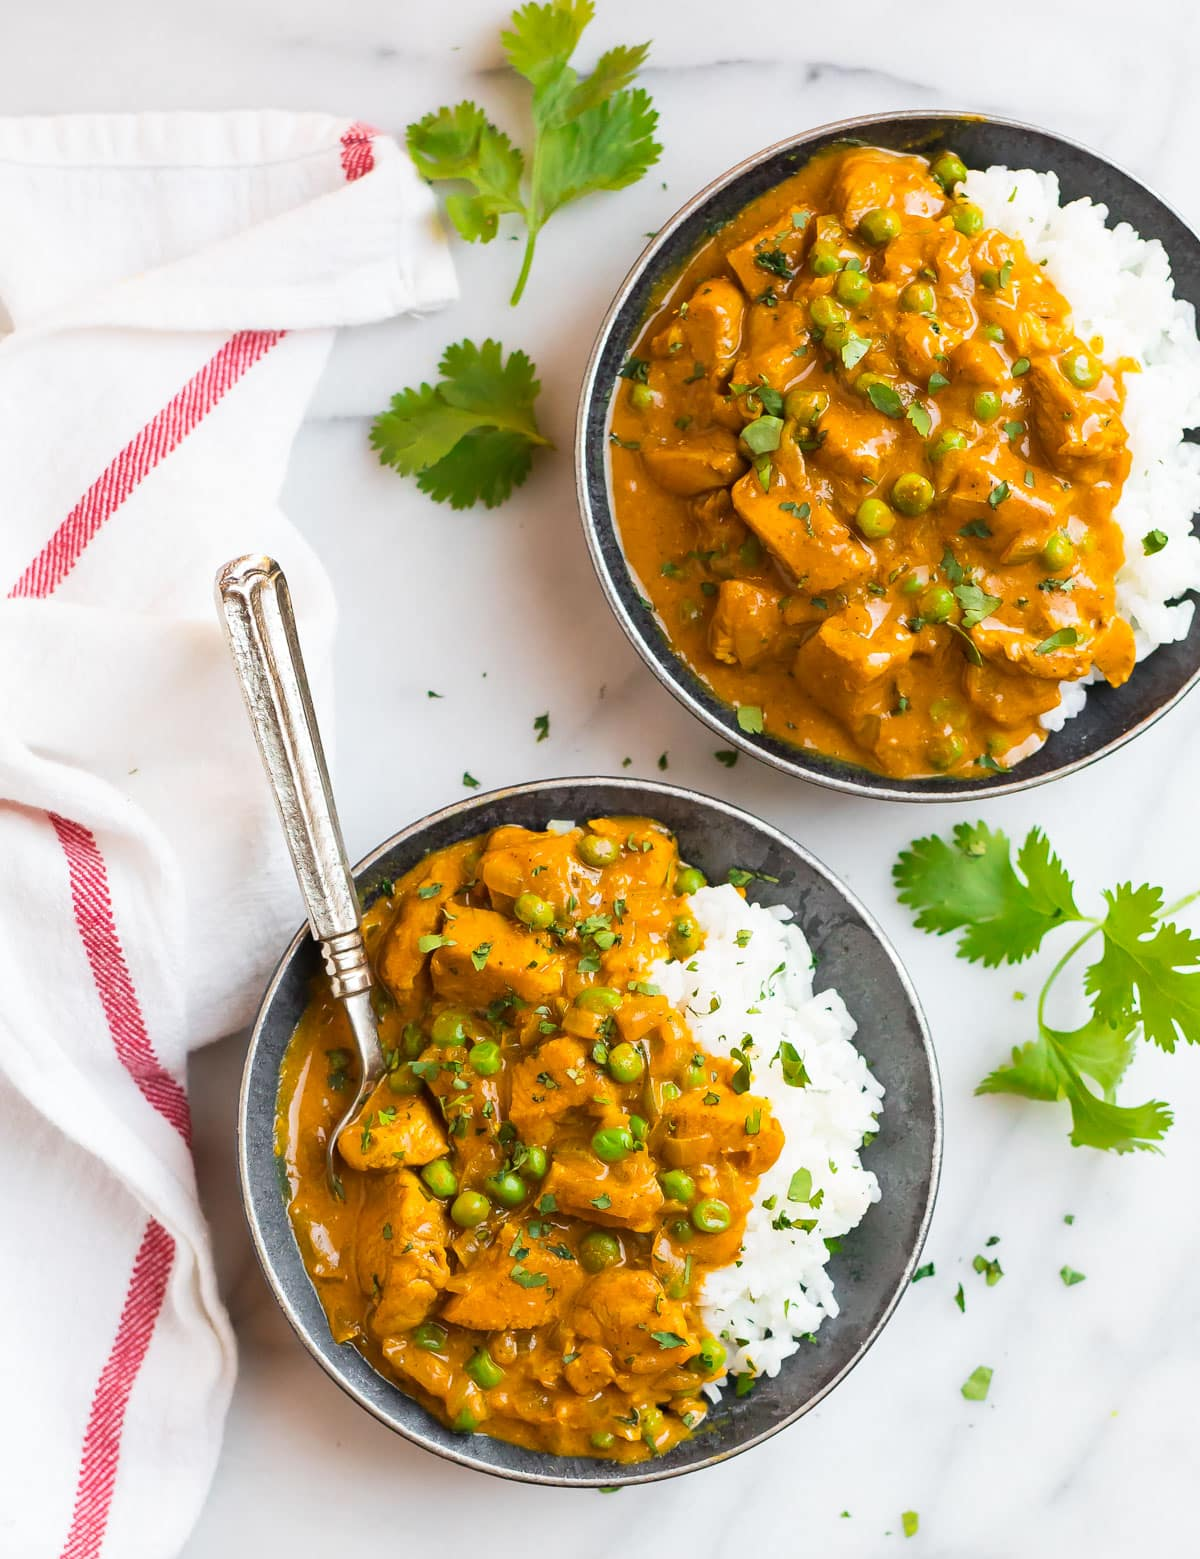 Healthy chicken tikka masala served in two bowls